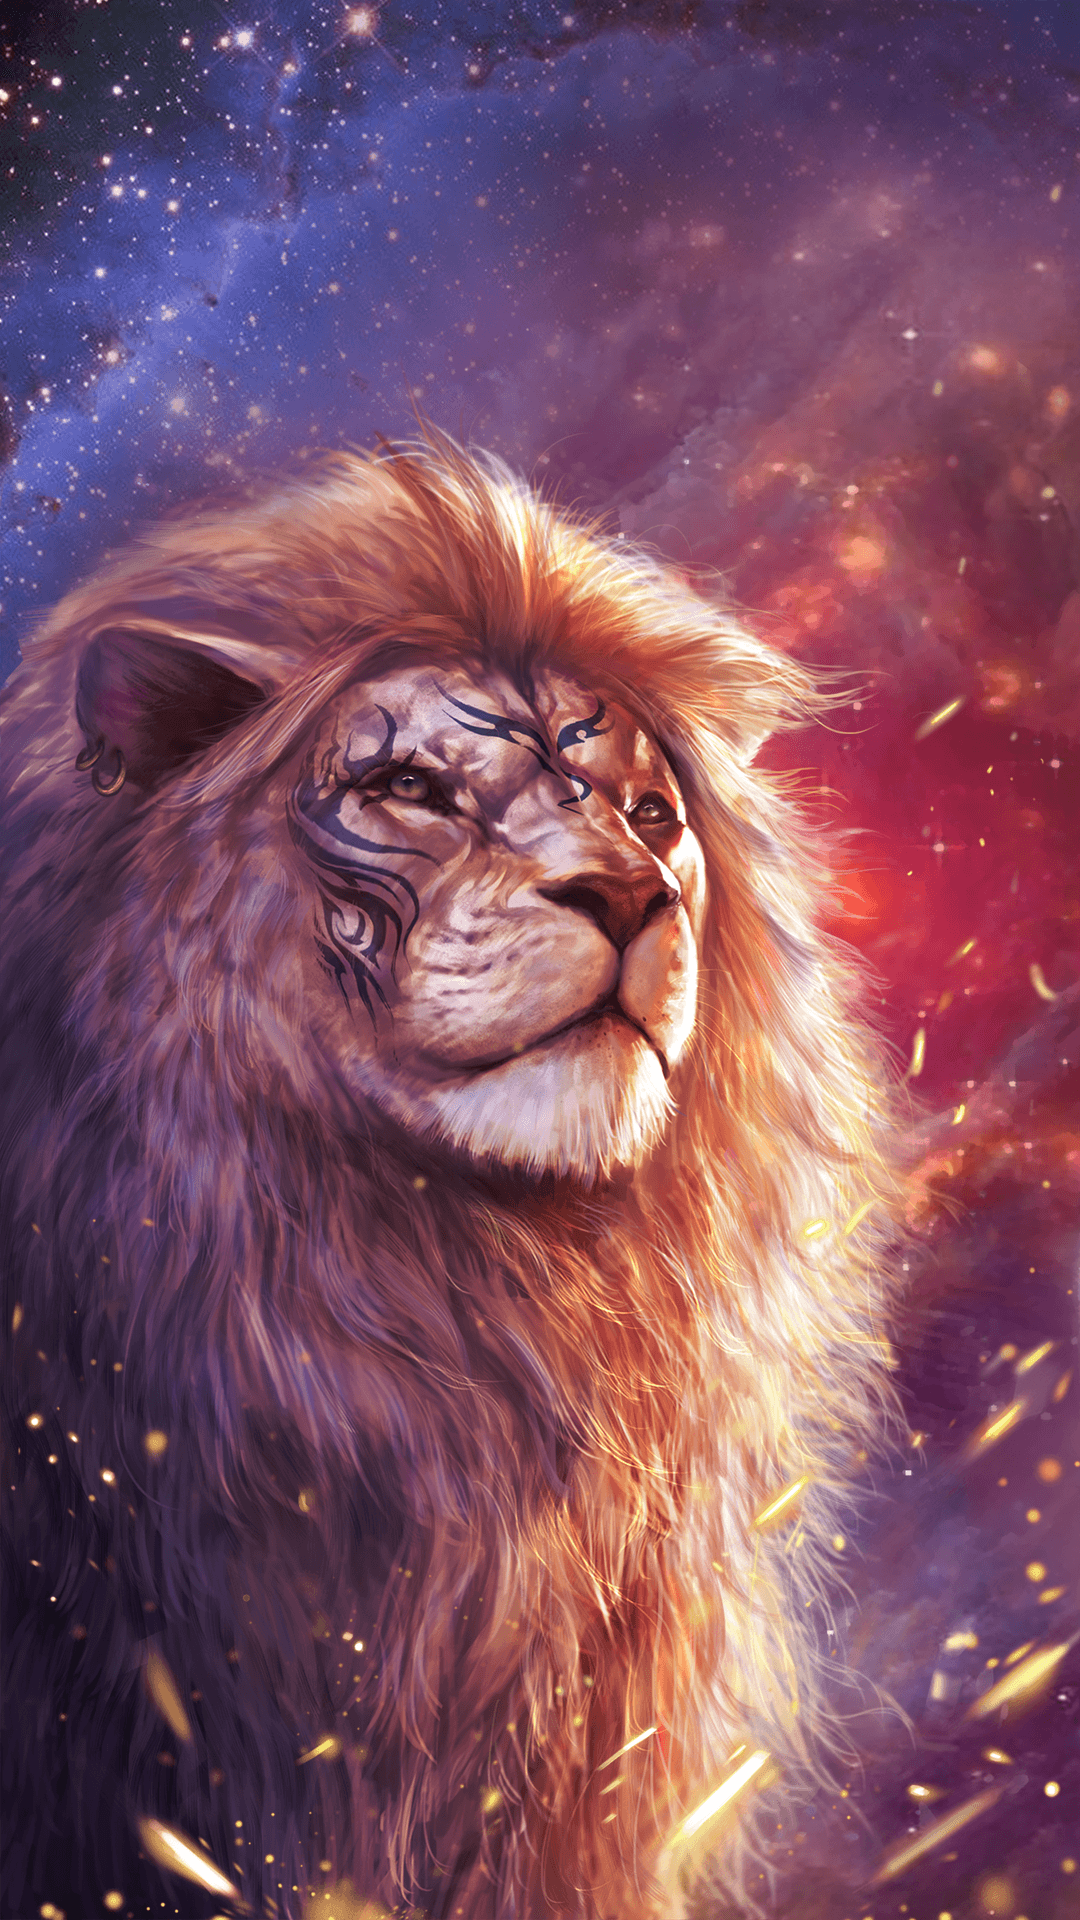 1080x1920 Cool lion wallpaper with totem tattoo! | Animal Tattoos in 2019 ...